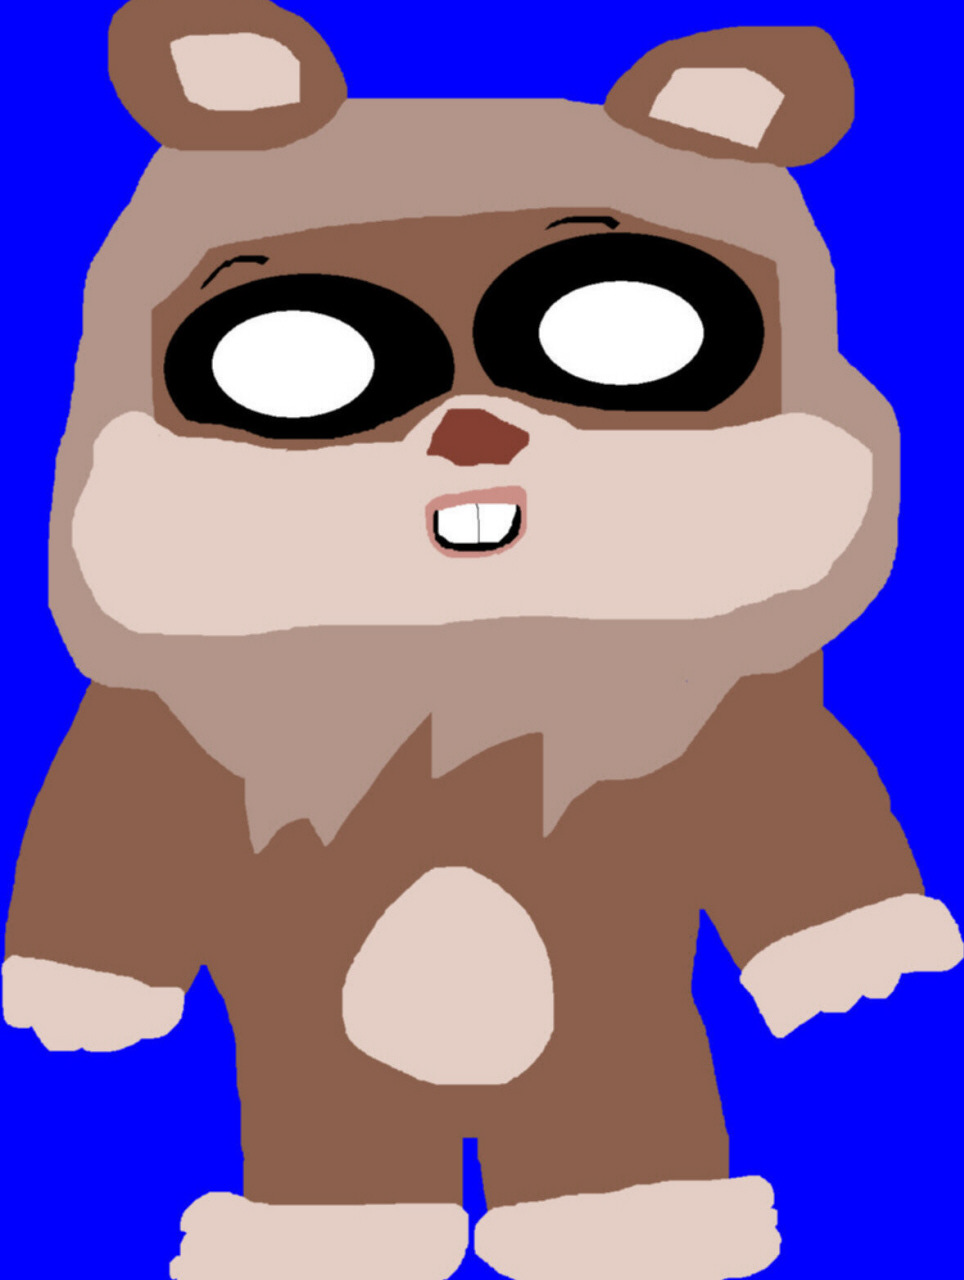 Random Wicket Ewok MS Paint^^ by Falconlobo